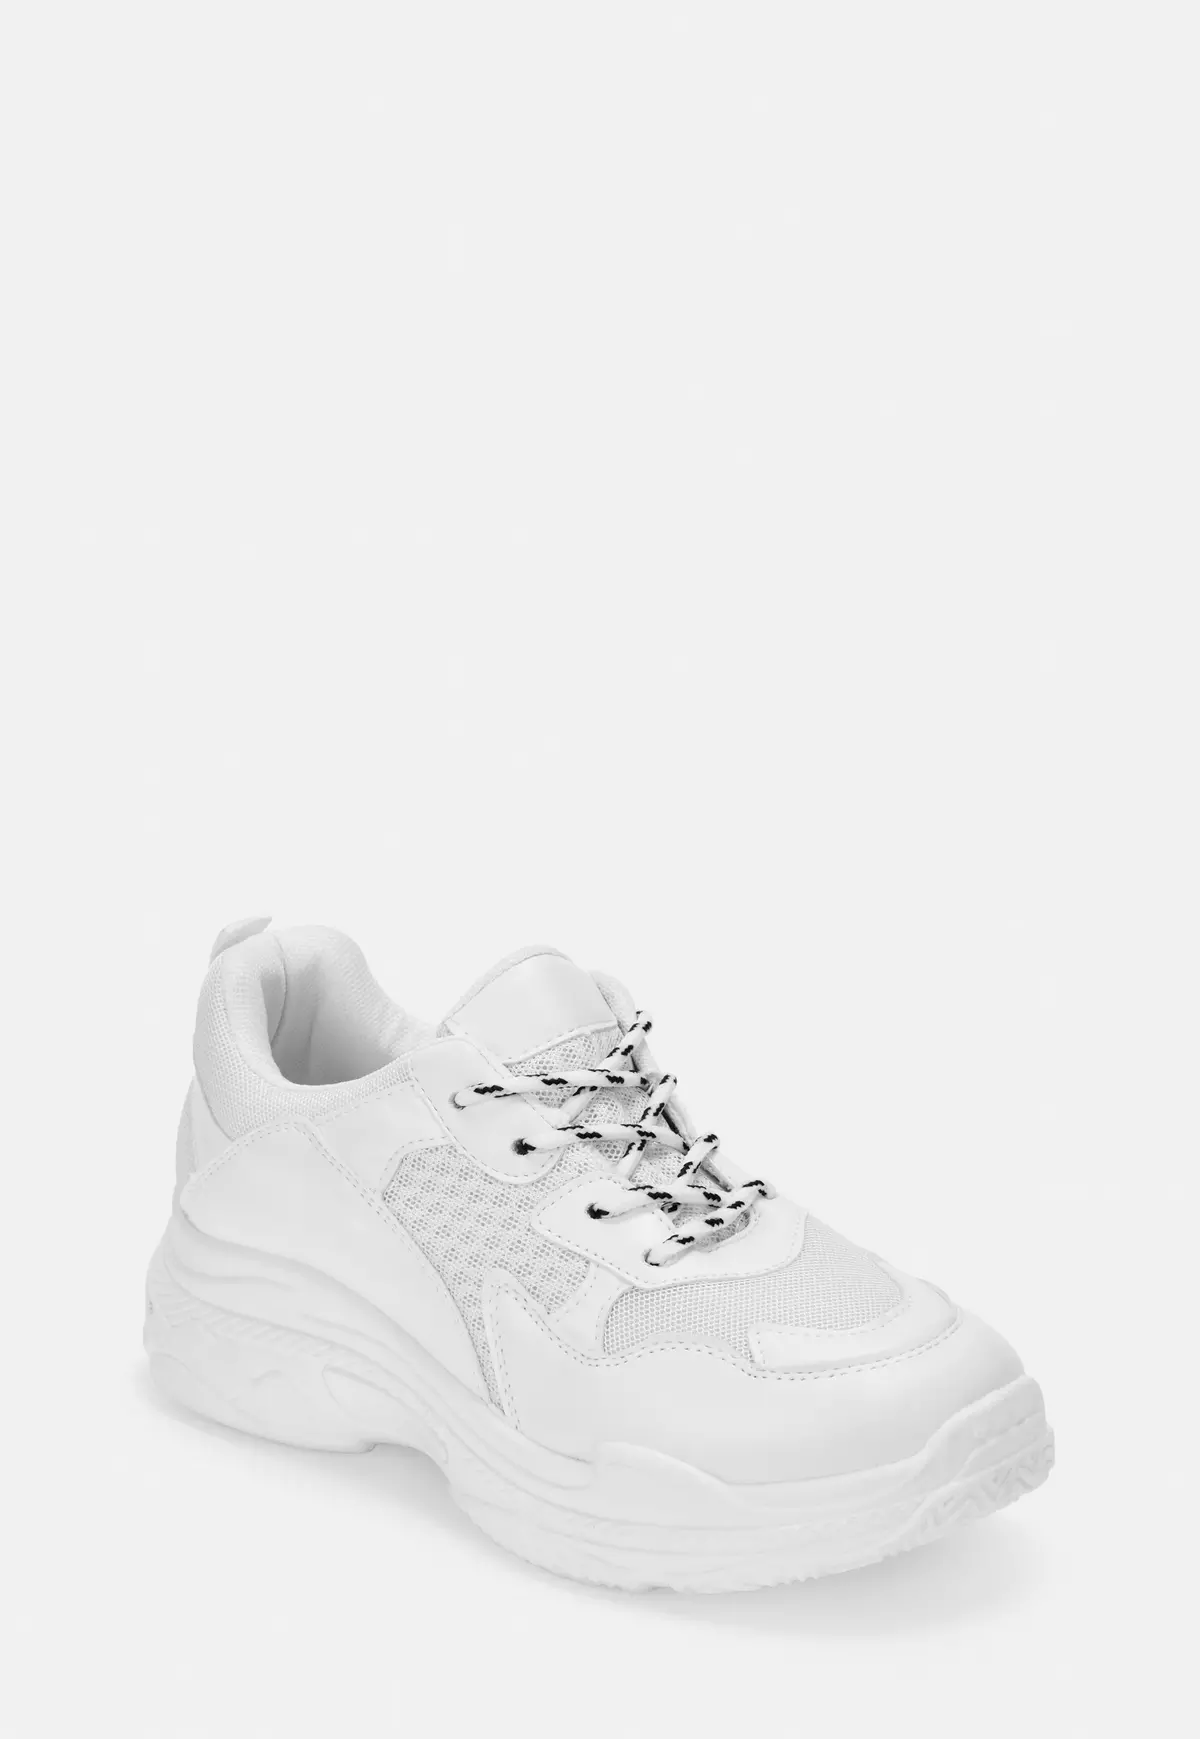 20 Cheap Chunky Sneakers Under $80 That